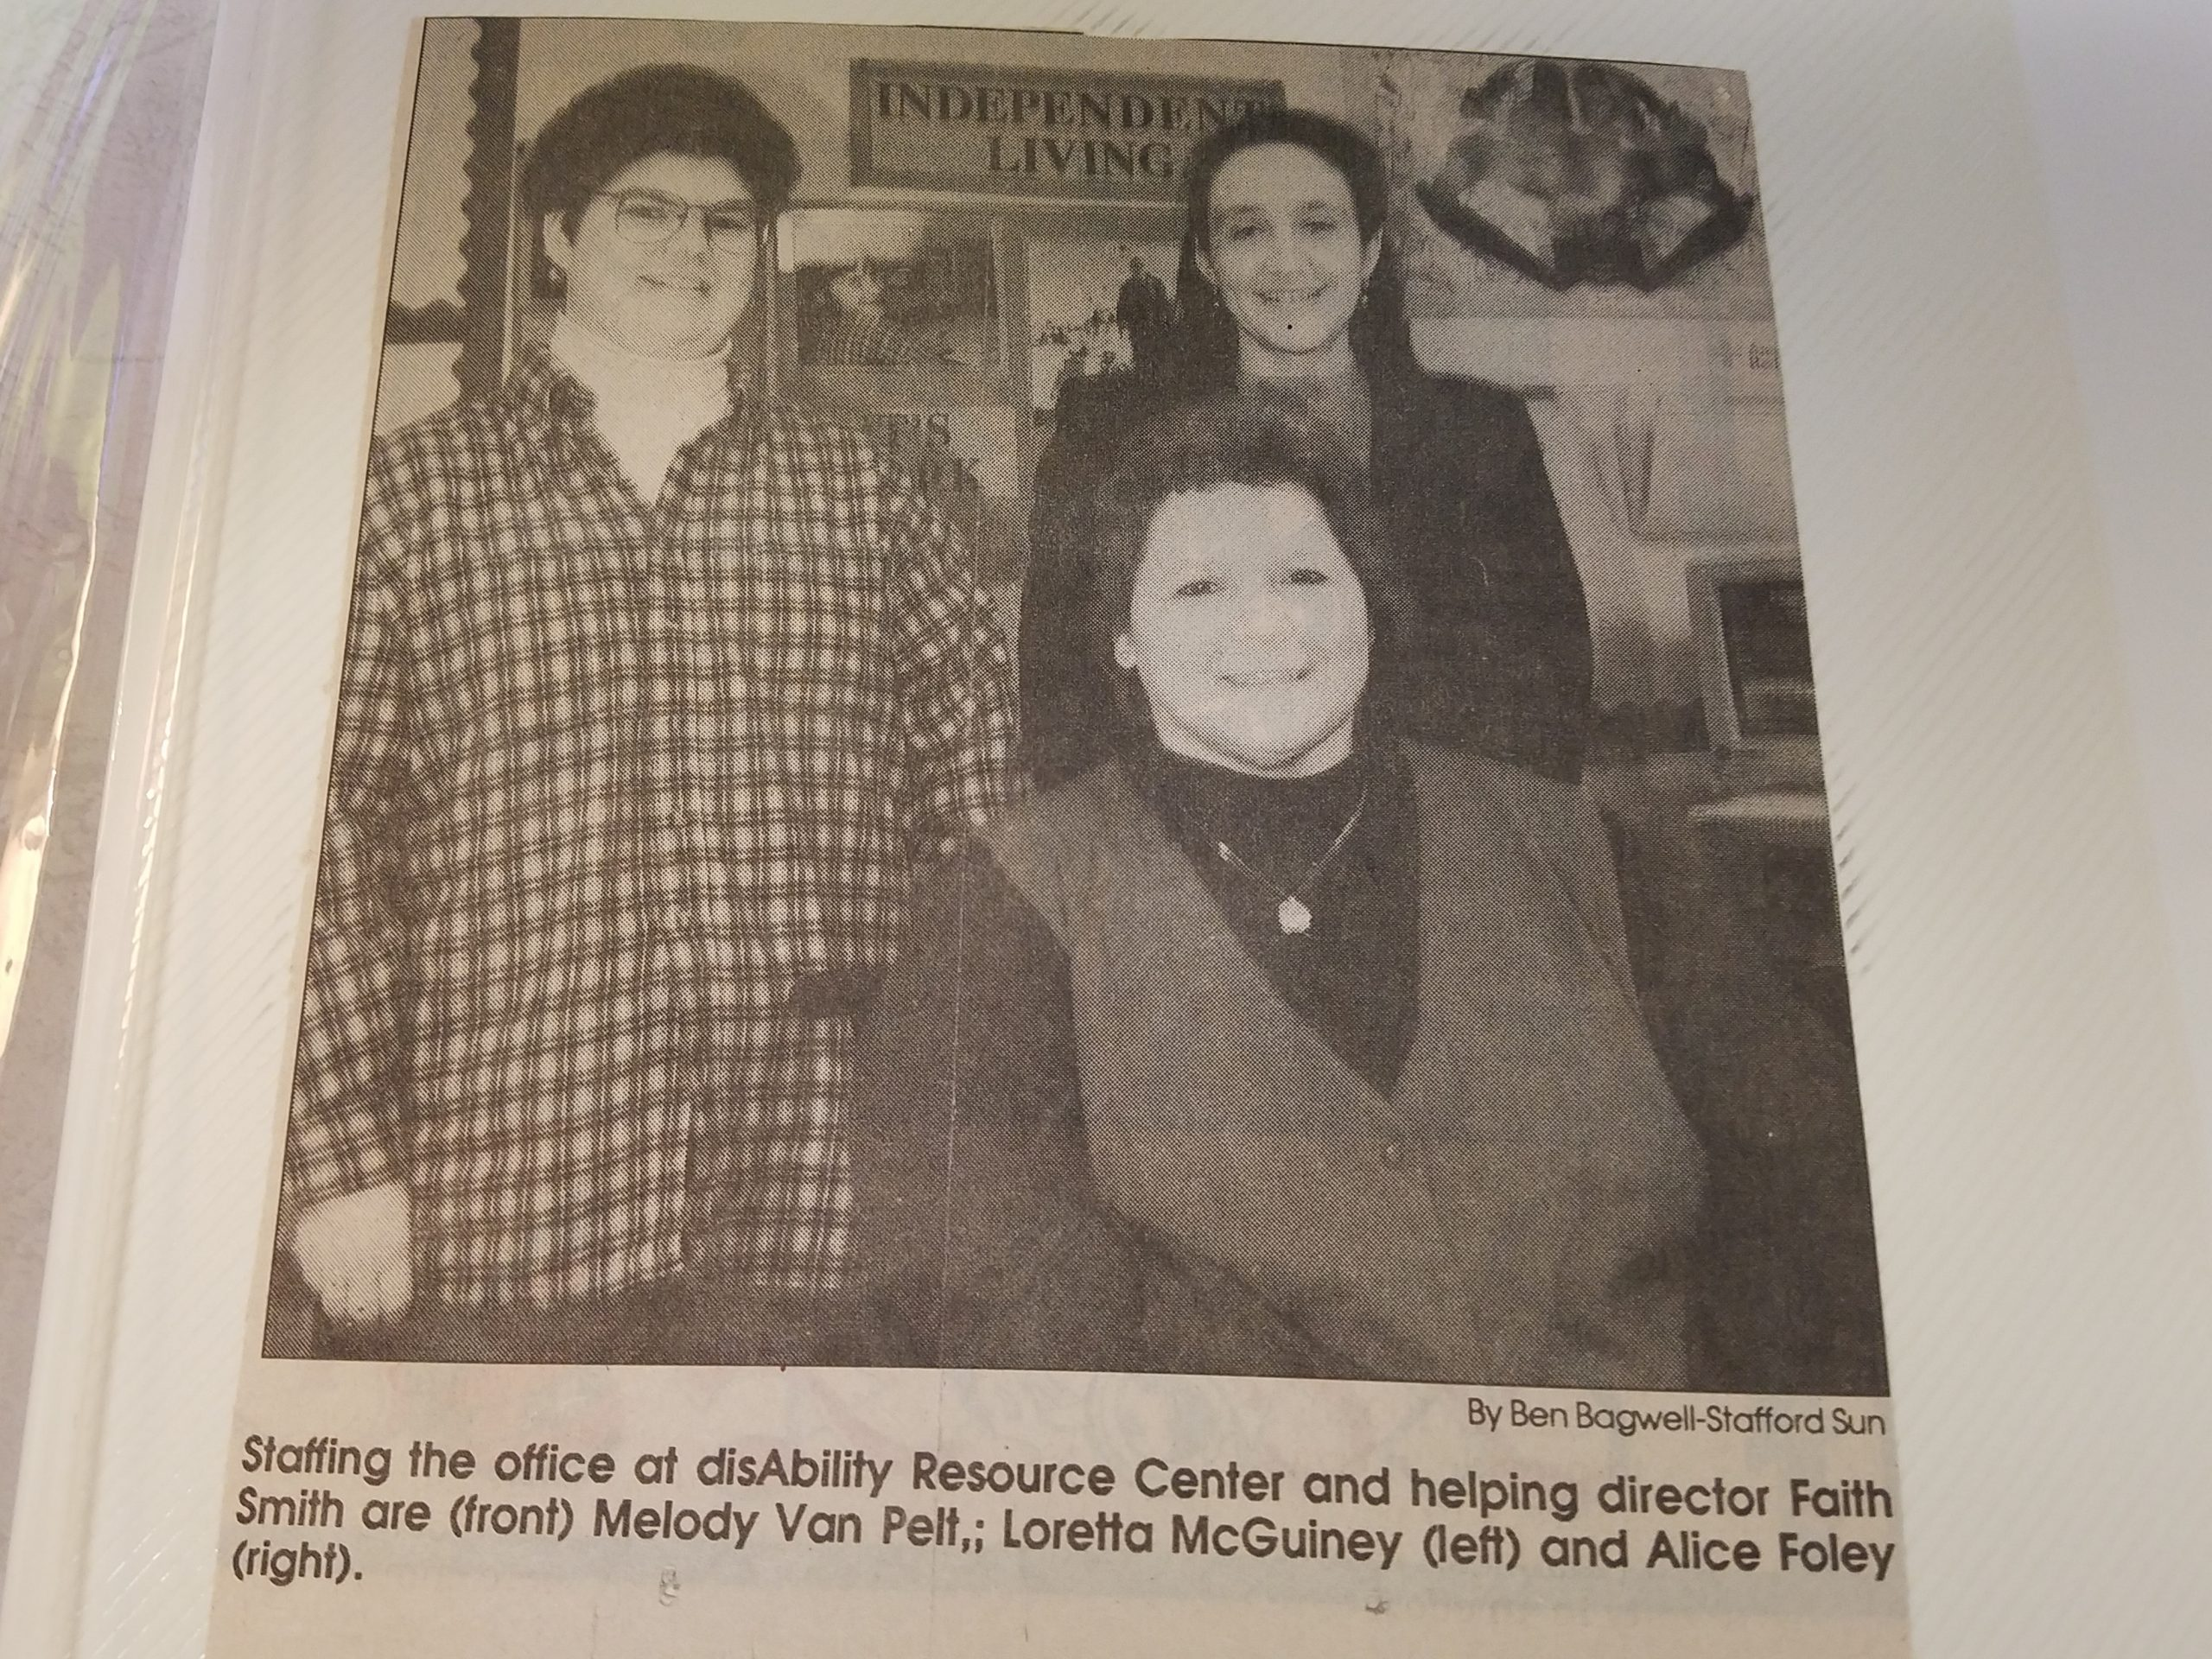 Newspaper picture with 3 people